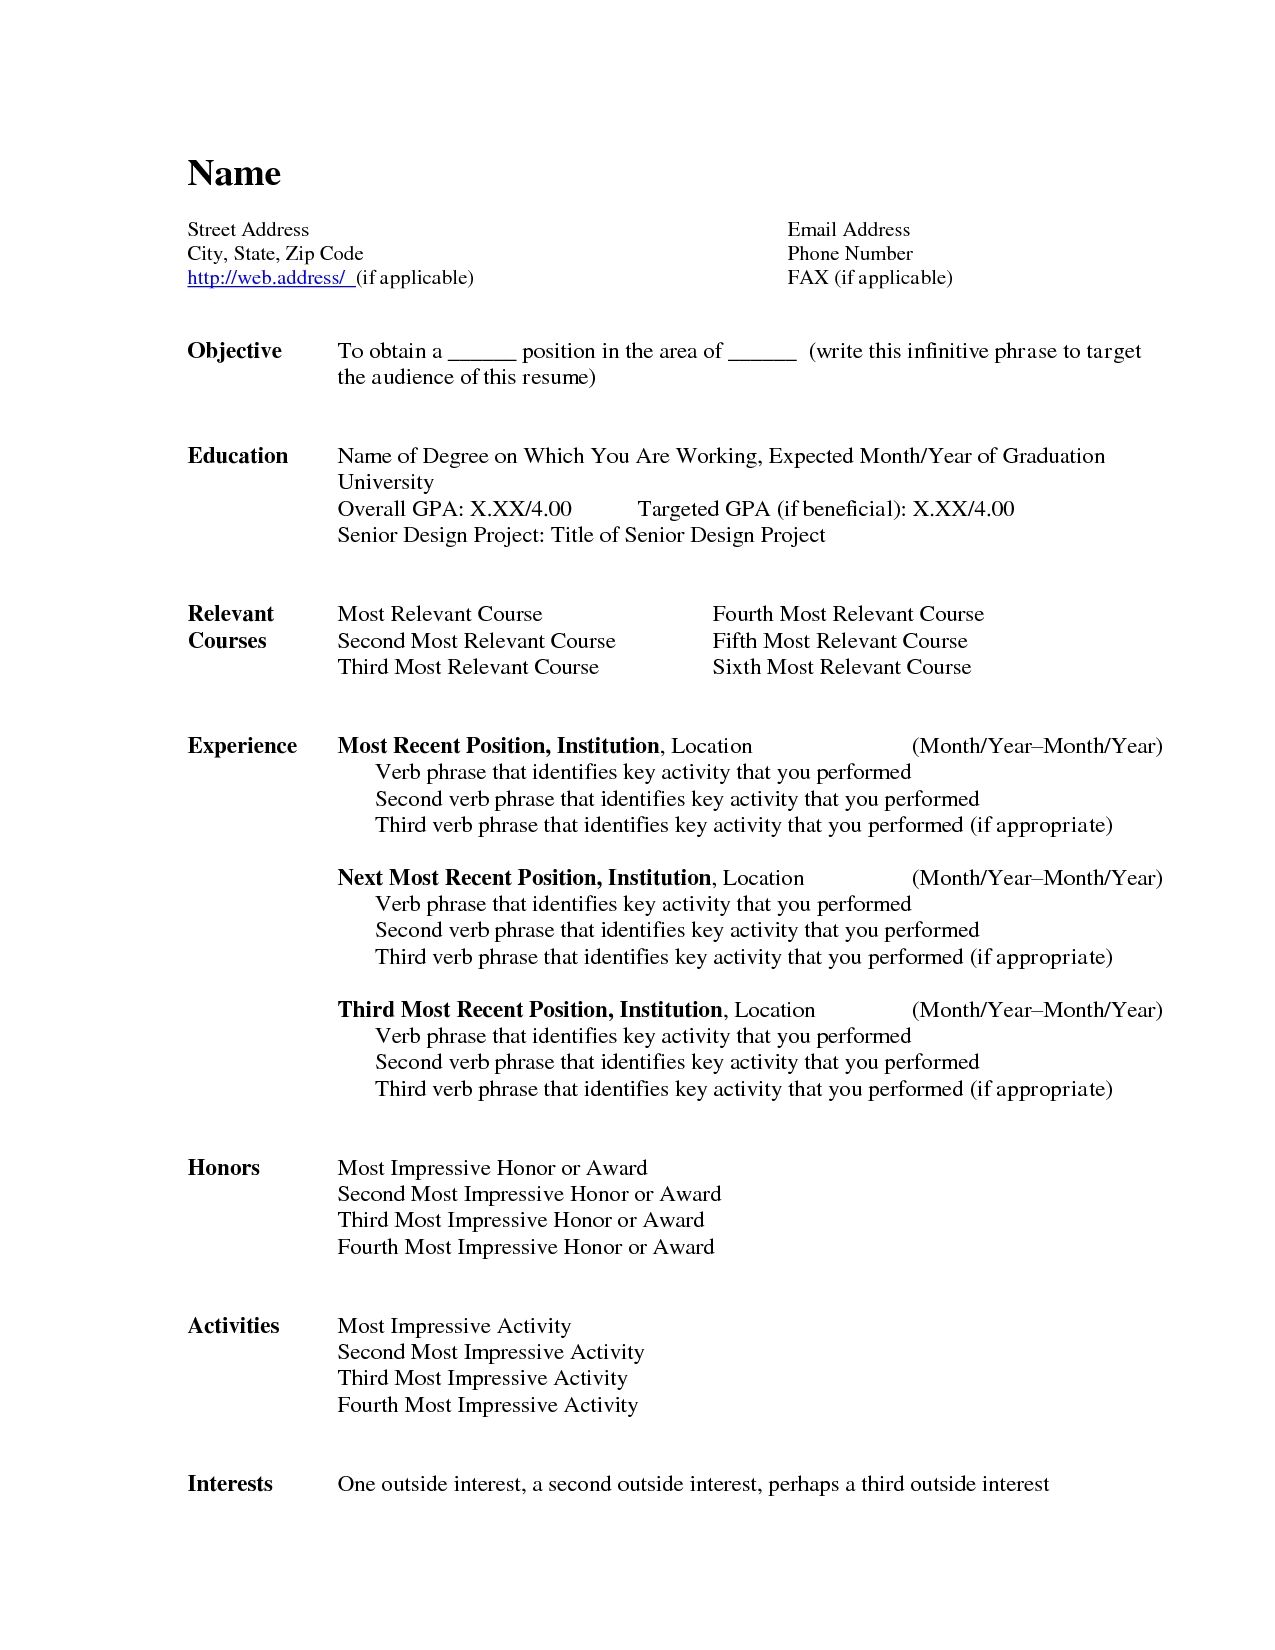 Resume Format Microsoft Word Enchanting Photo Ms Word Resume Format Images The Ms Word Resume Format Inspiration Design